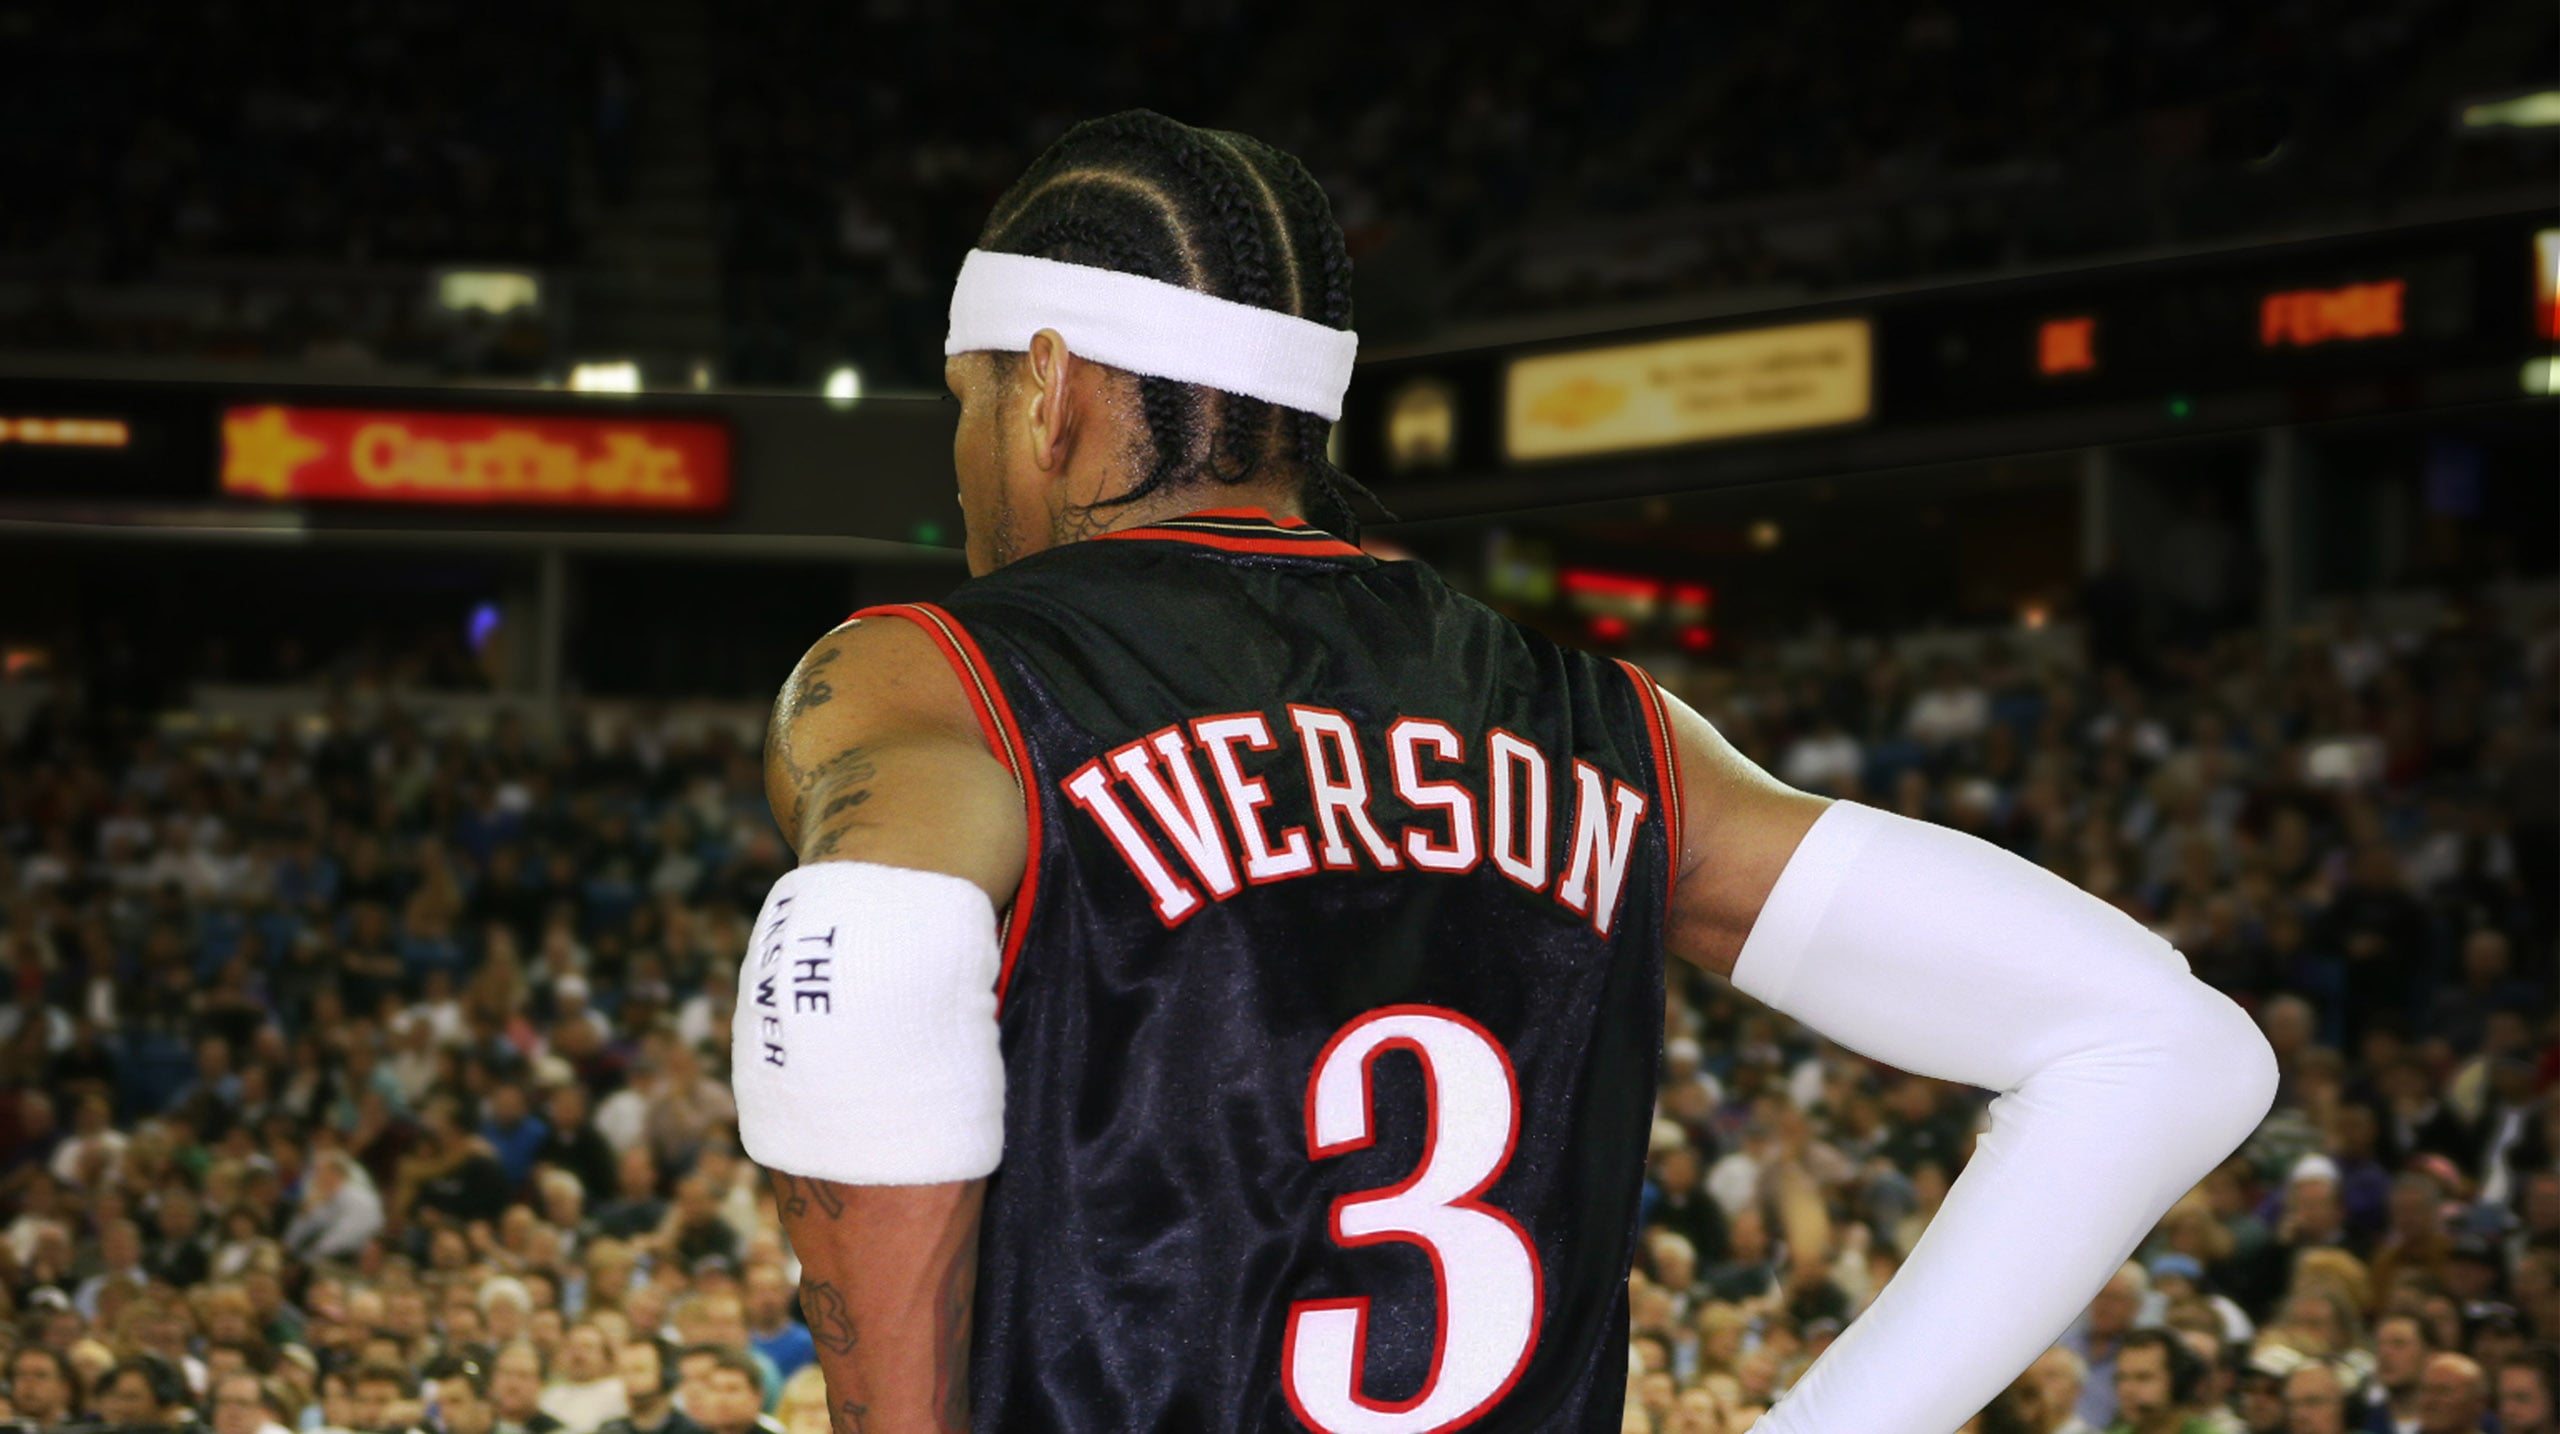 High Quality Wallpapers Fall Theme 26 Allen Iverson Wallpapers Hd Free Download